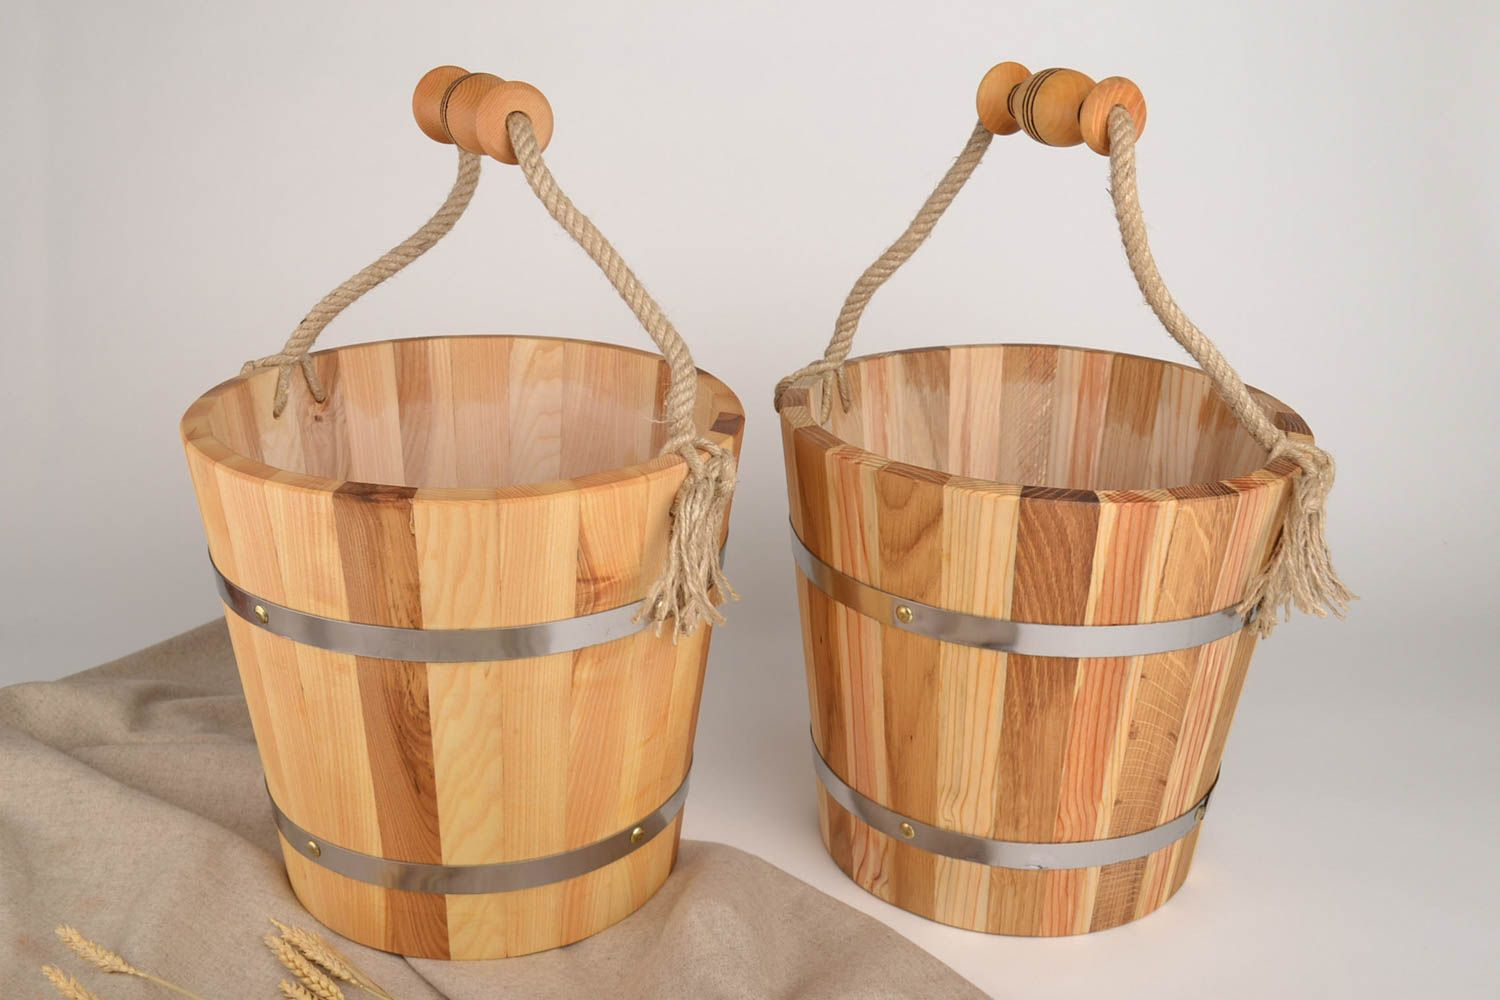 Handmade wooden bucket for sauna bath accessories sauna bucket present for men photo 1